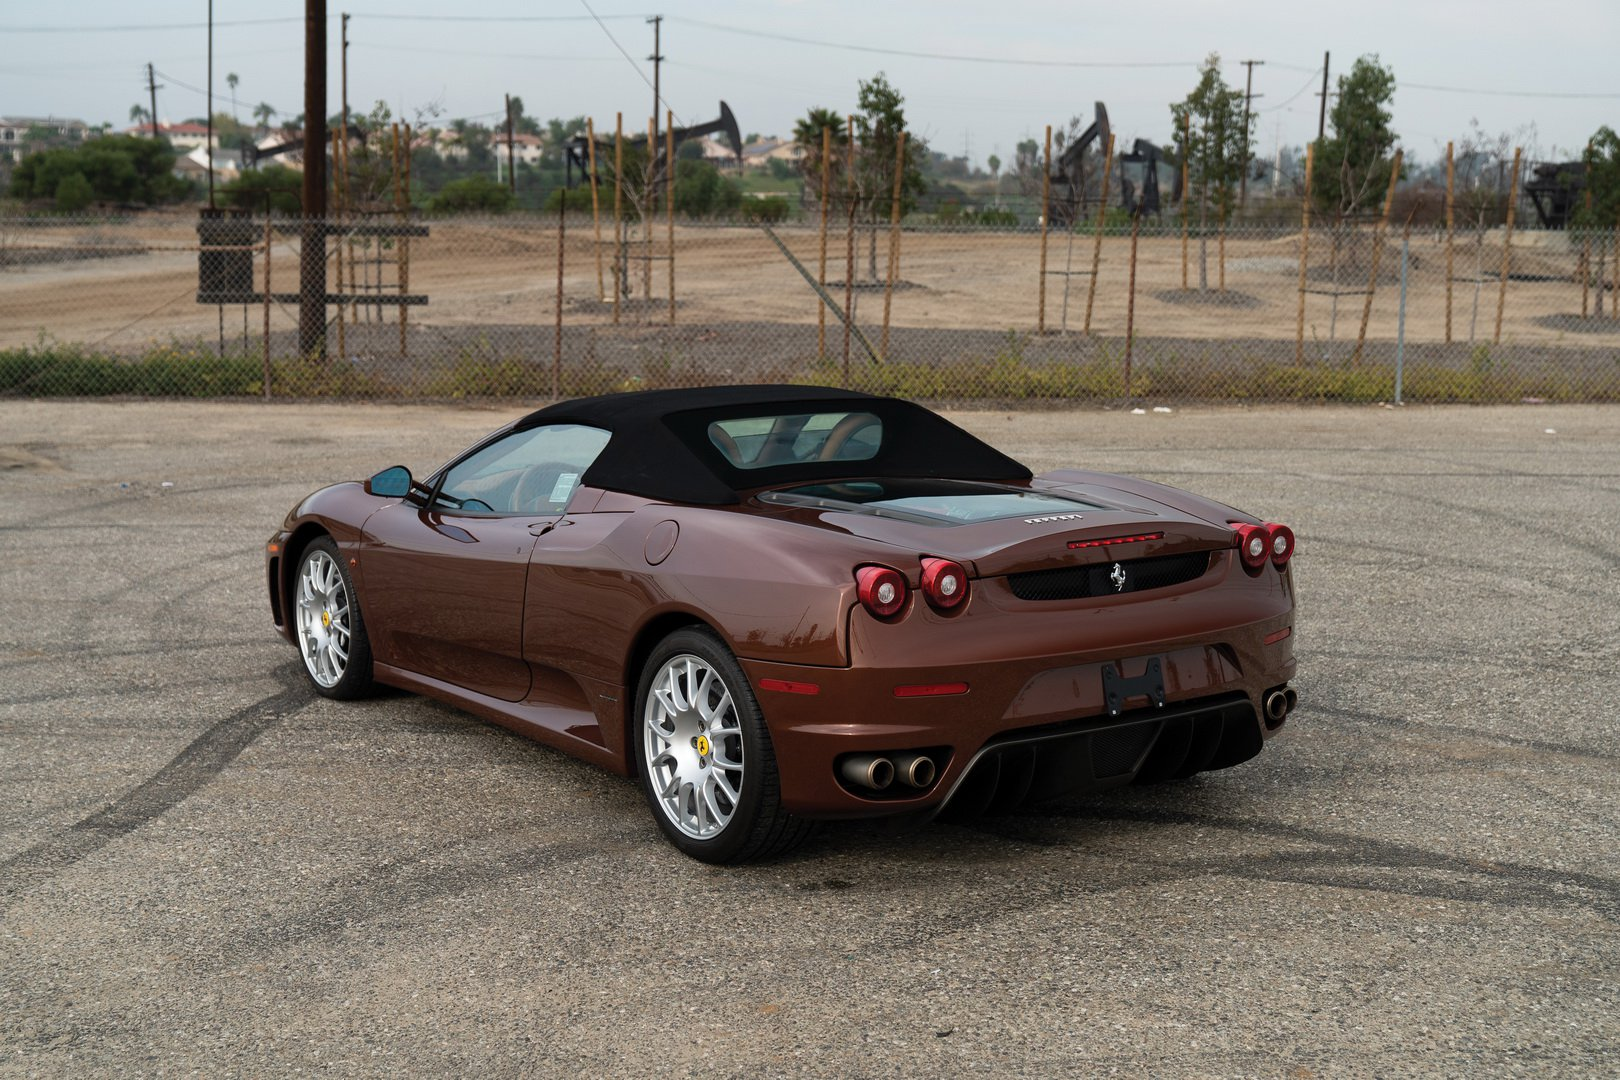 Ferrari F430 Spider in brown Classic Marrone color (2)